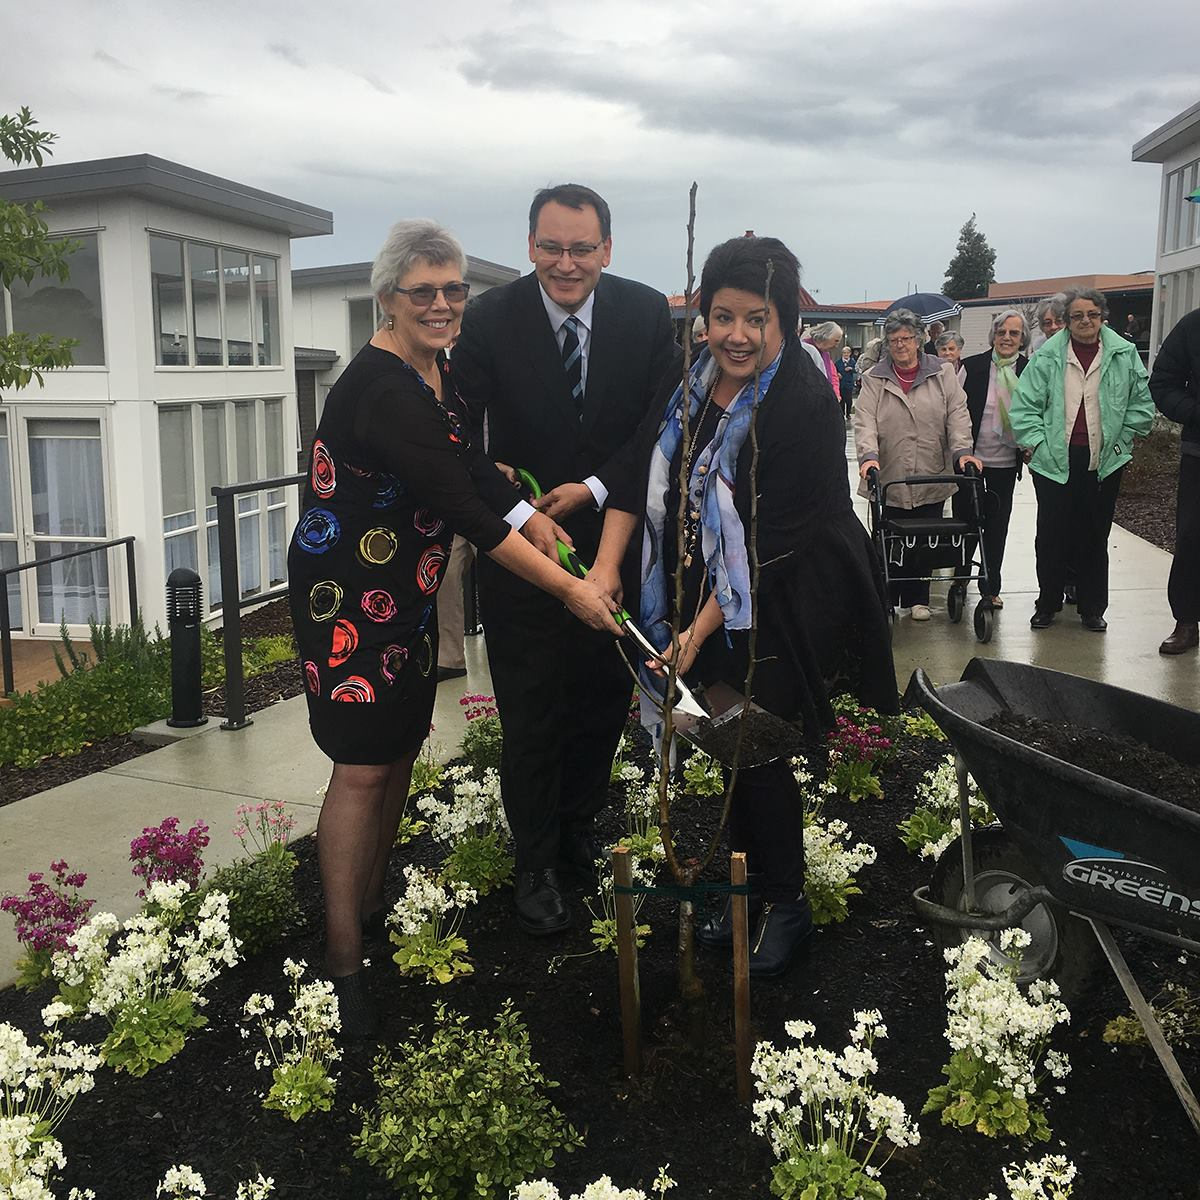 Paula Bennett celebrating the opening of Stage 2 of the expansion at The Falls Estate with a tree planting ceremony.